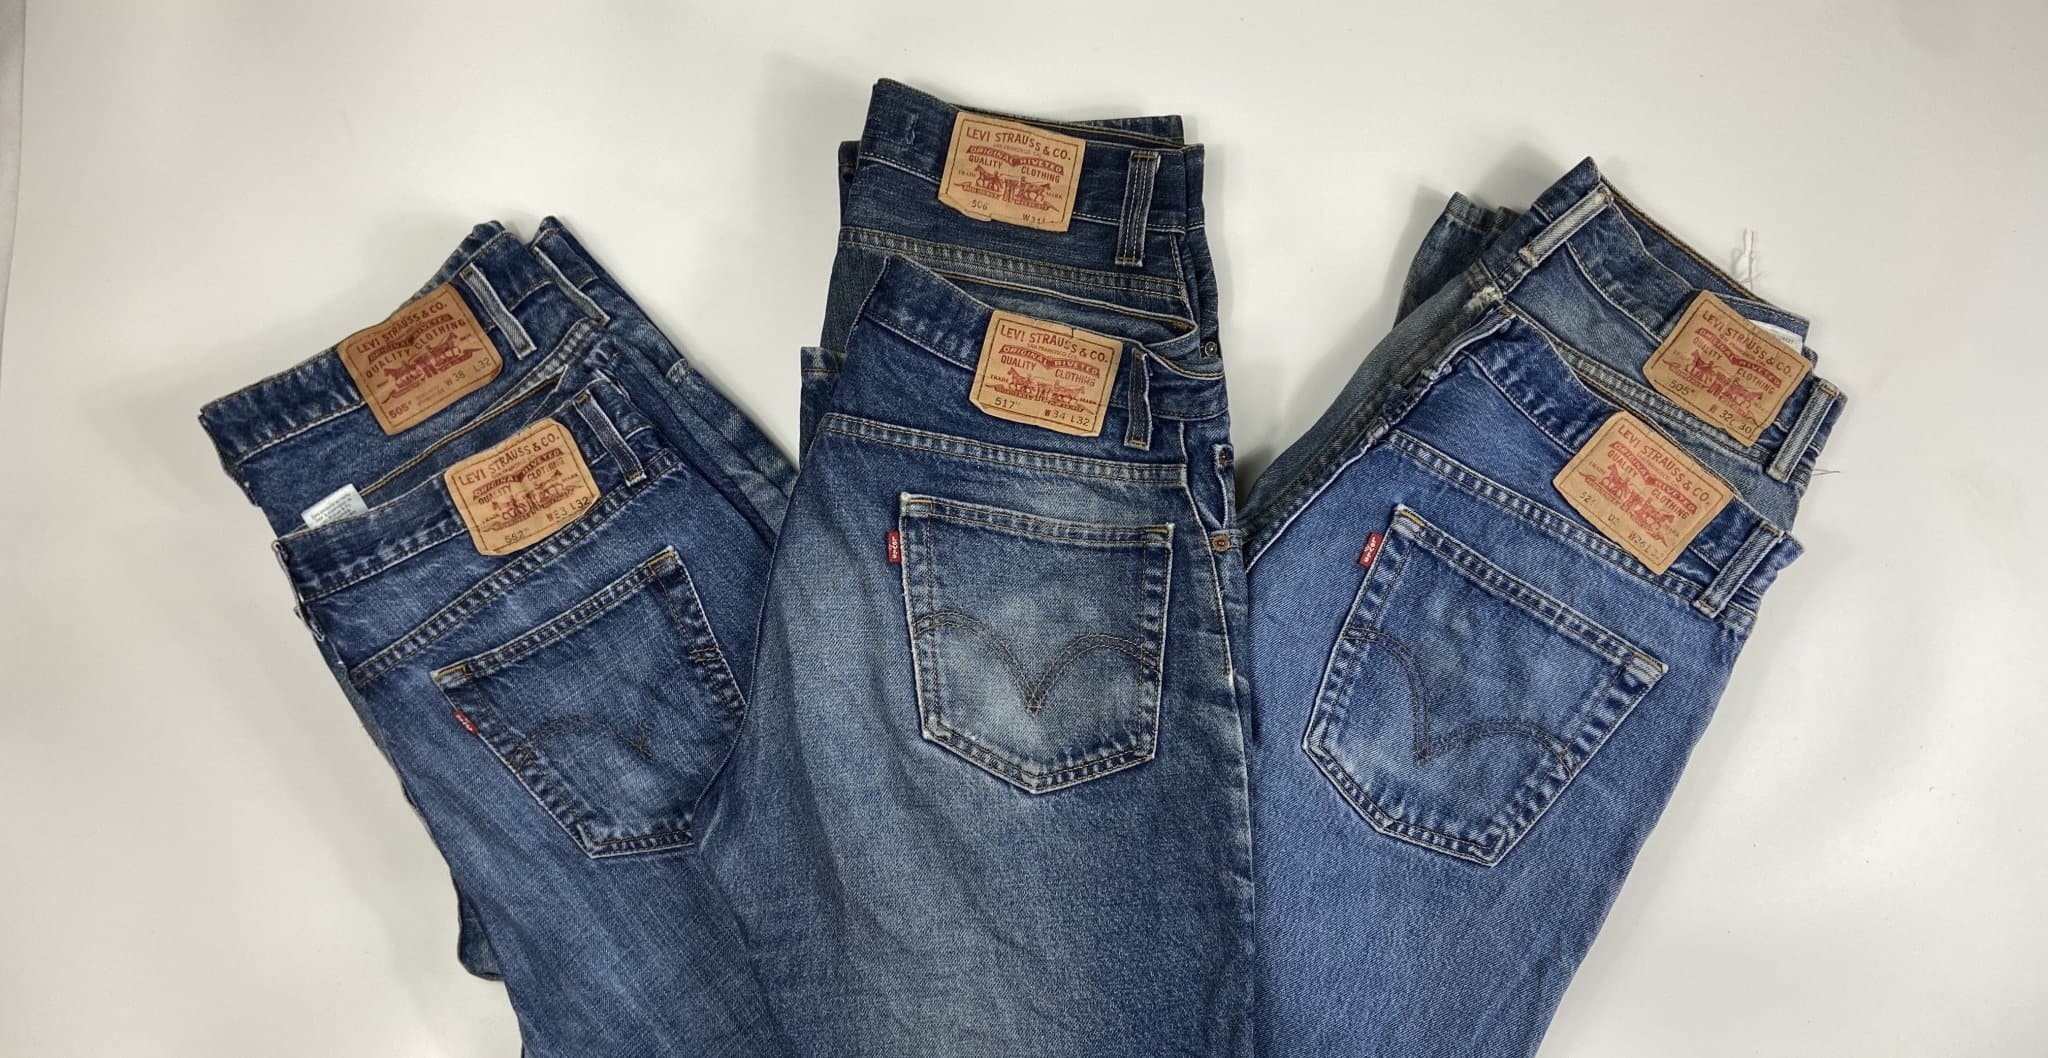 Vintage Levi's 550 Classic Blue Zip Fly Jeans W34 L30 (M15) - Discounted Deals UK